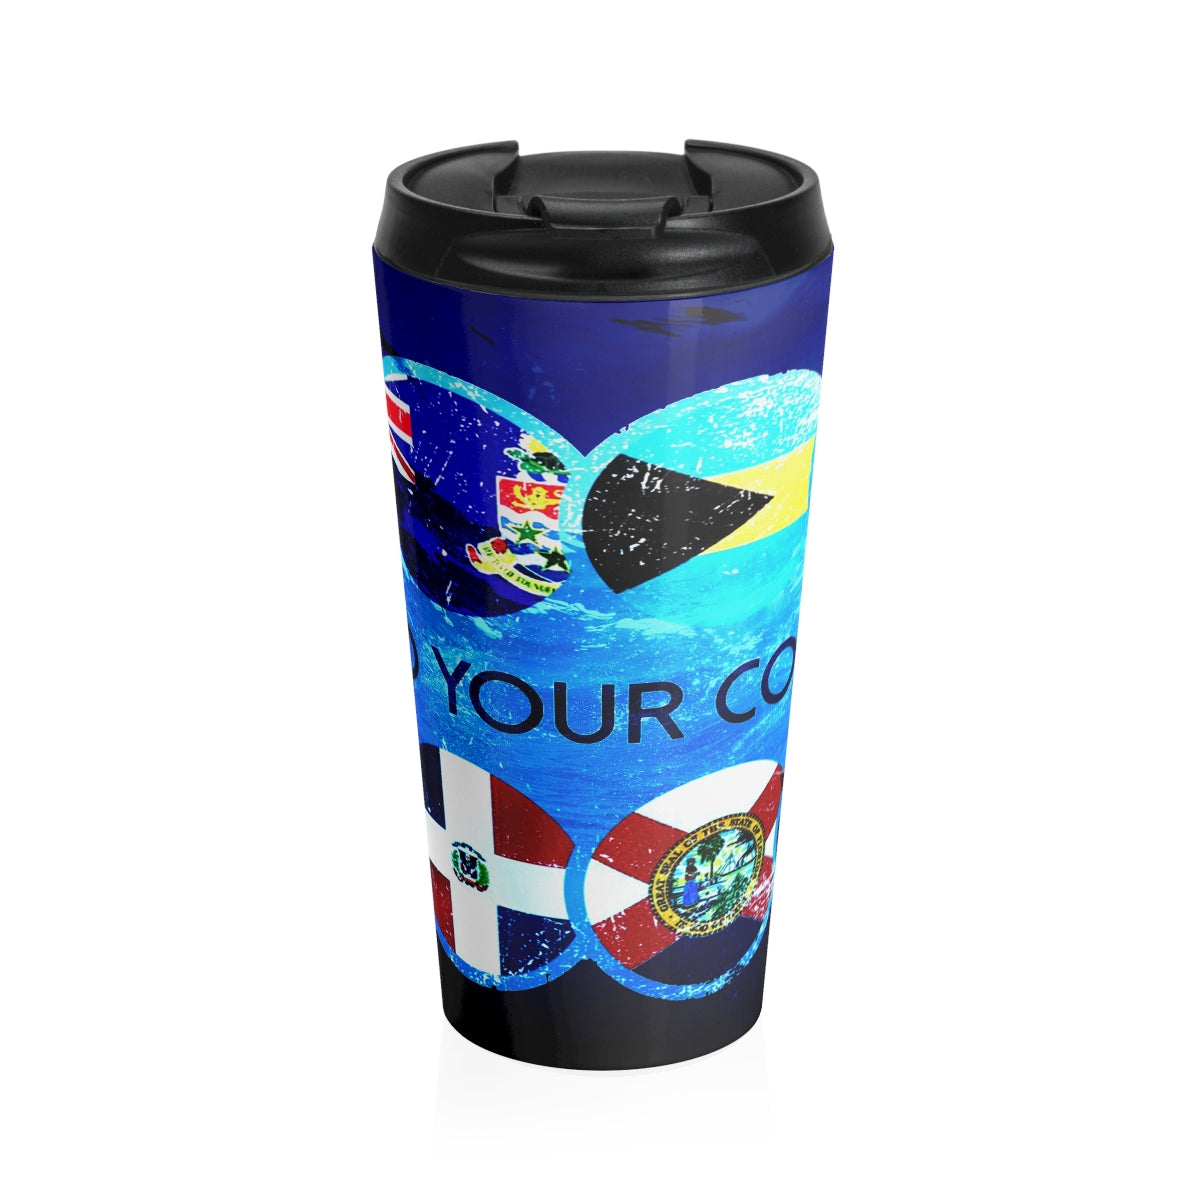 Destinations Stainless Steel Travel Mug - Find Your Coast Supply Co.